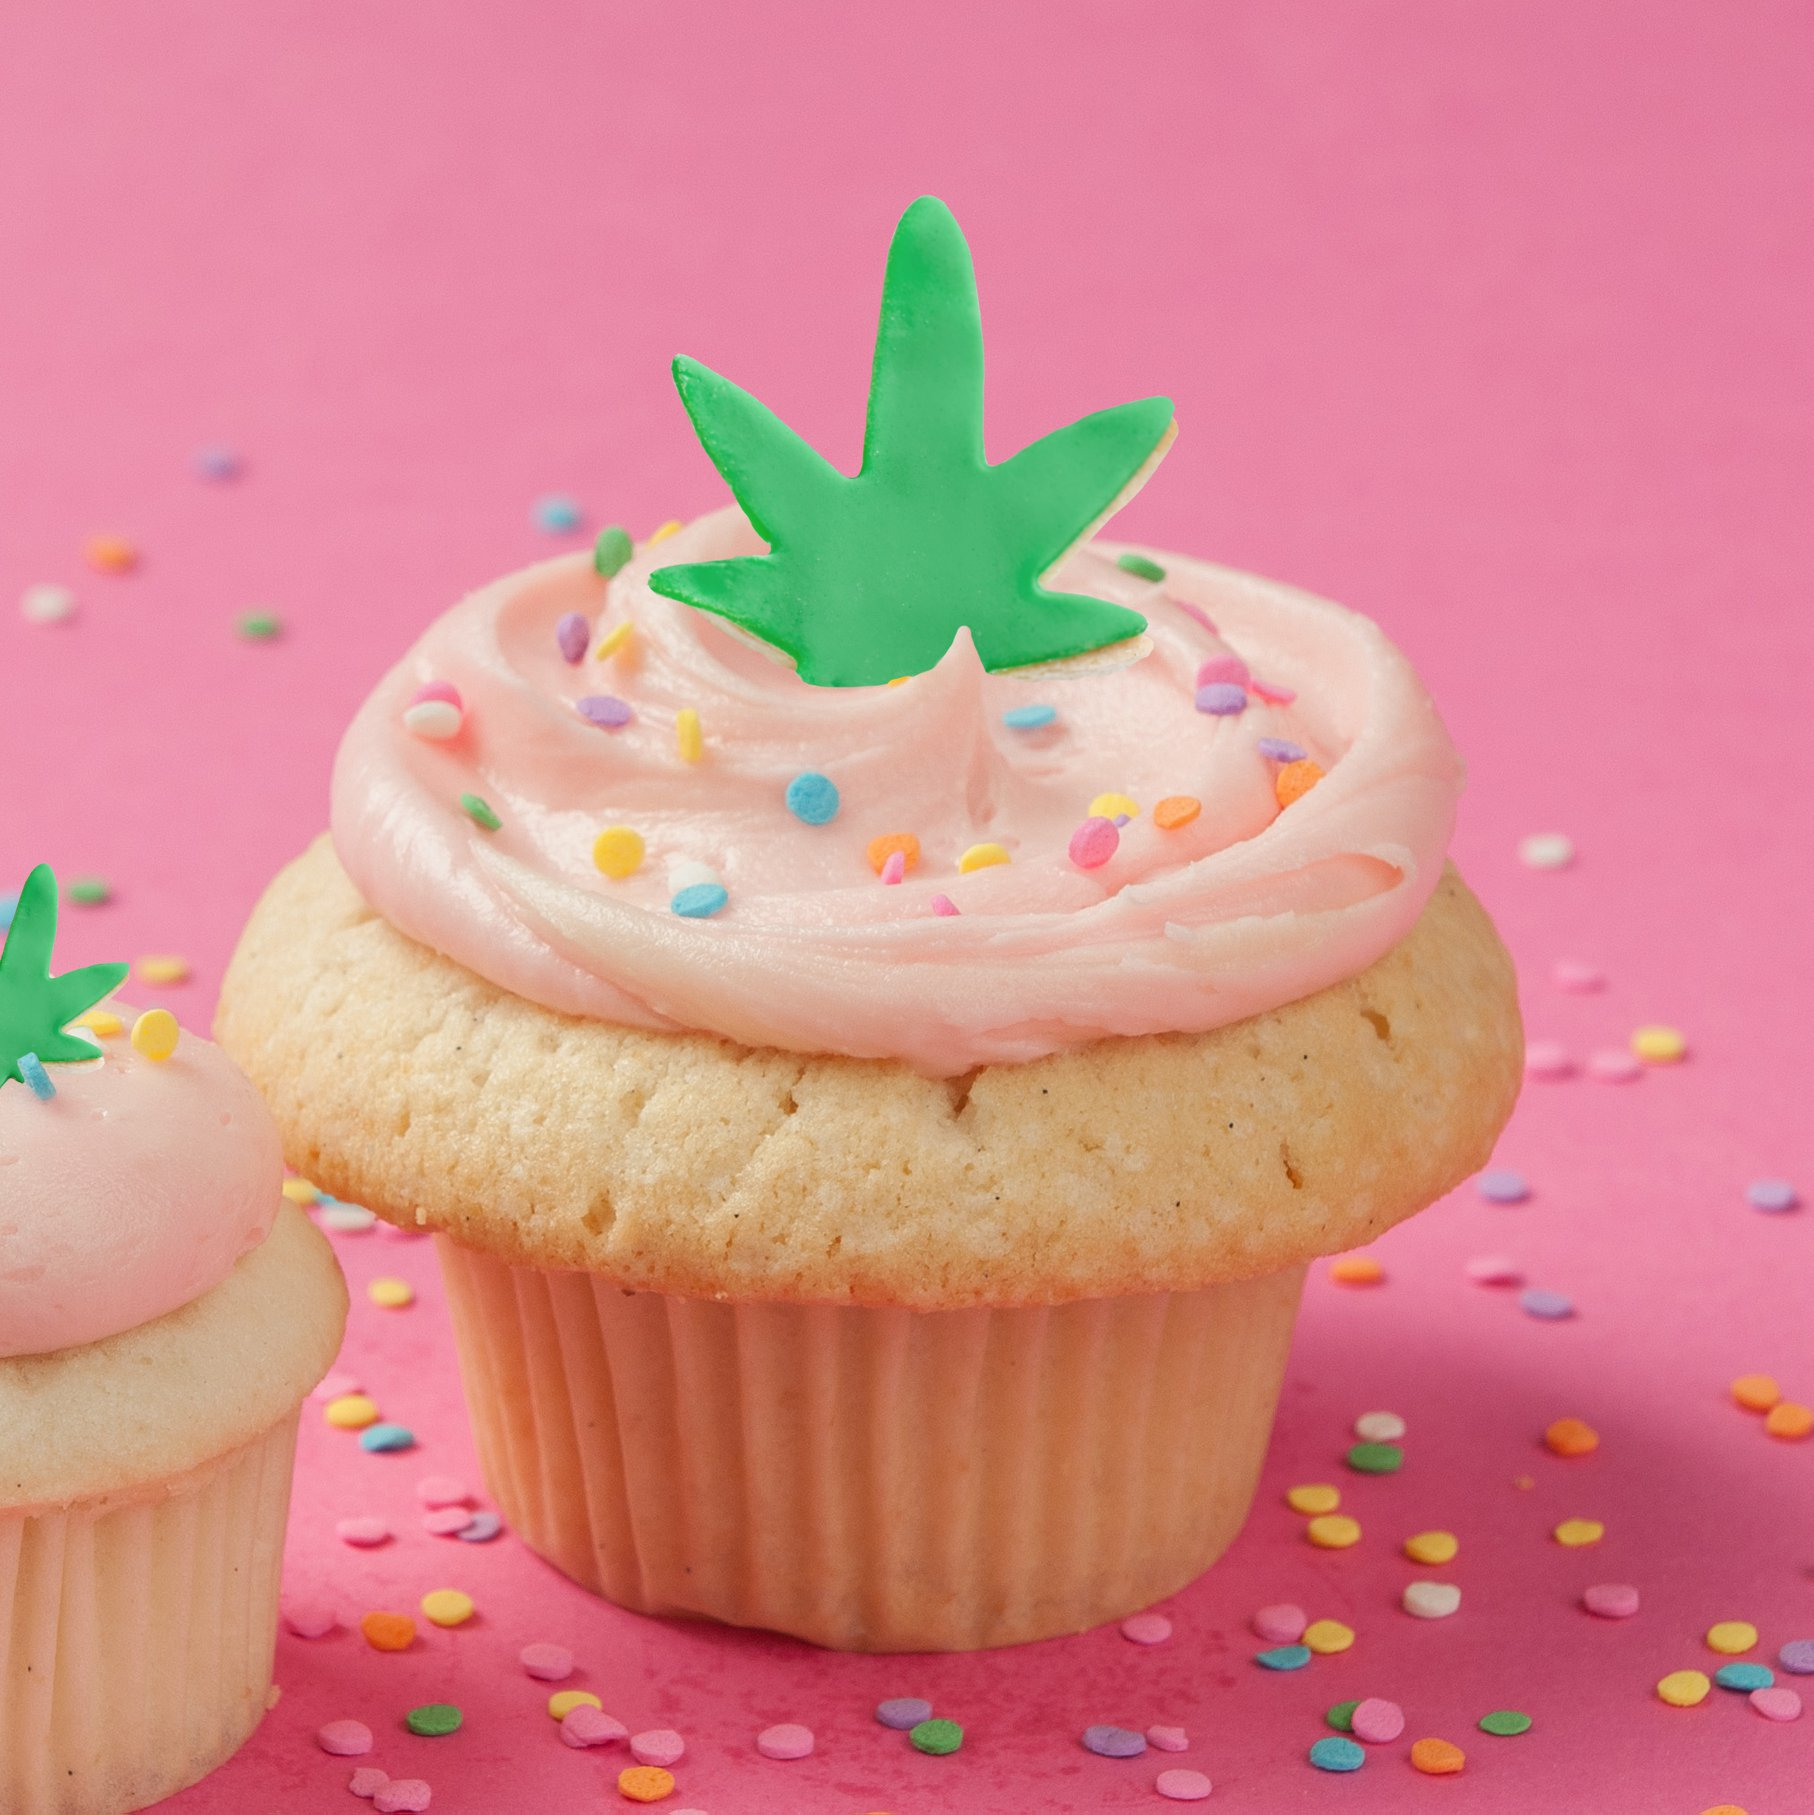 A cupcake with a marijuana leaf decoration on top against a pink background